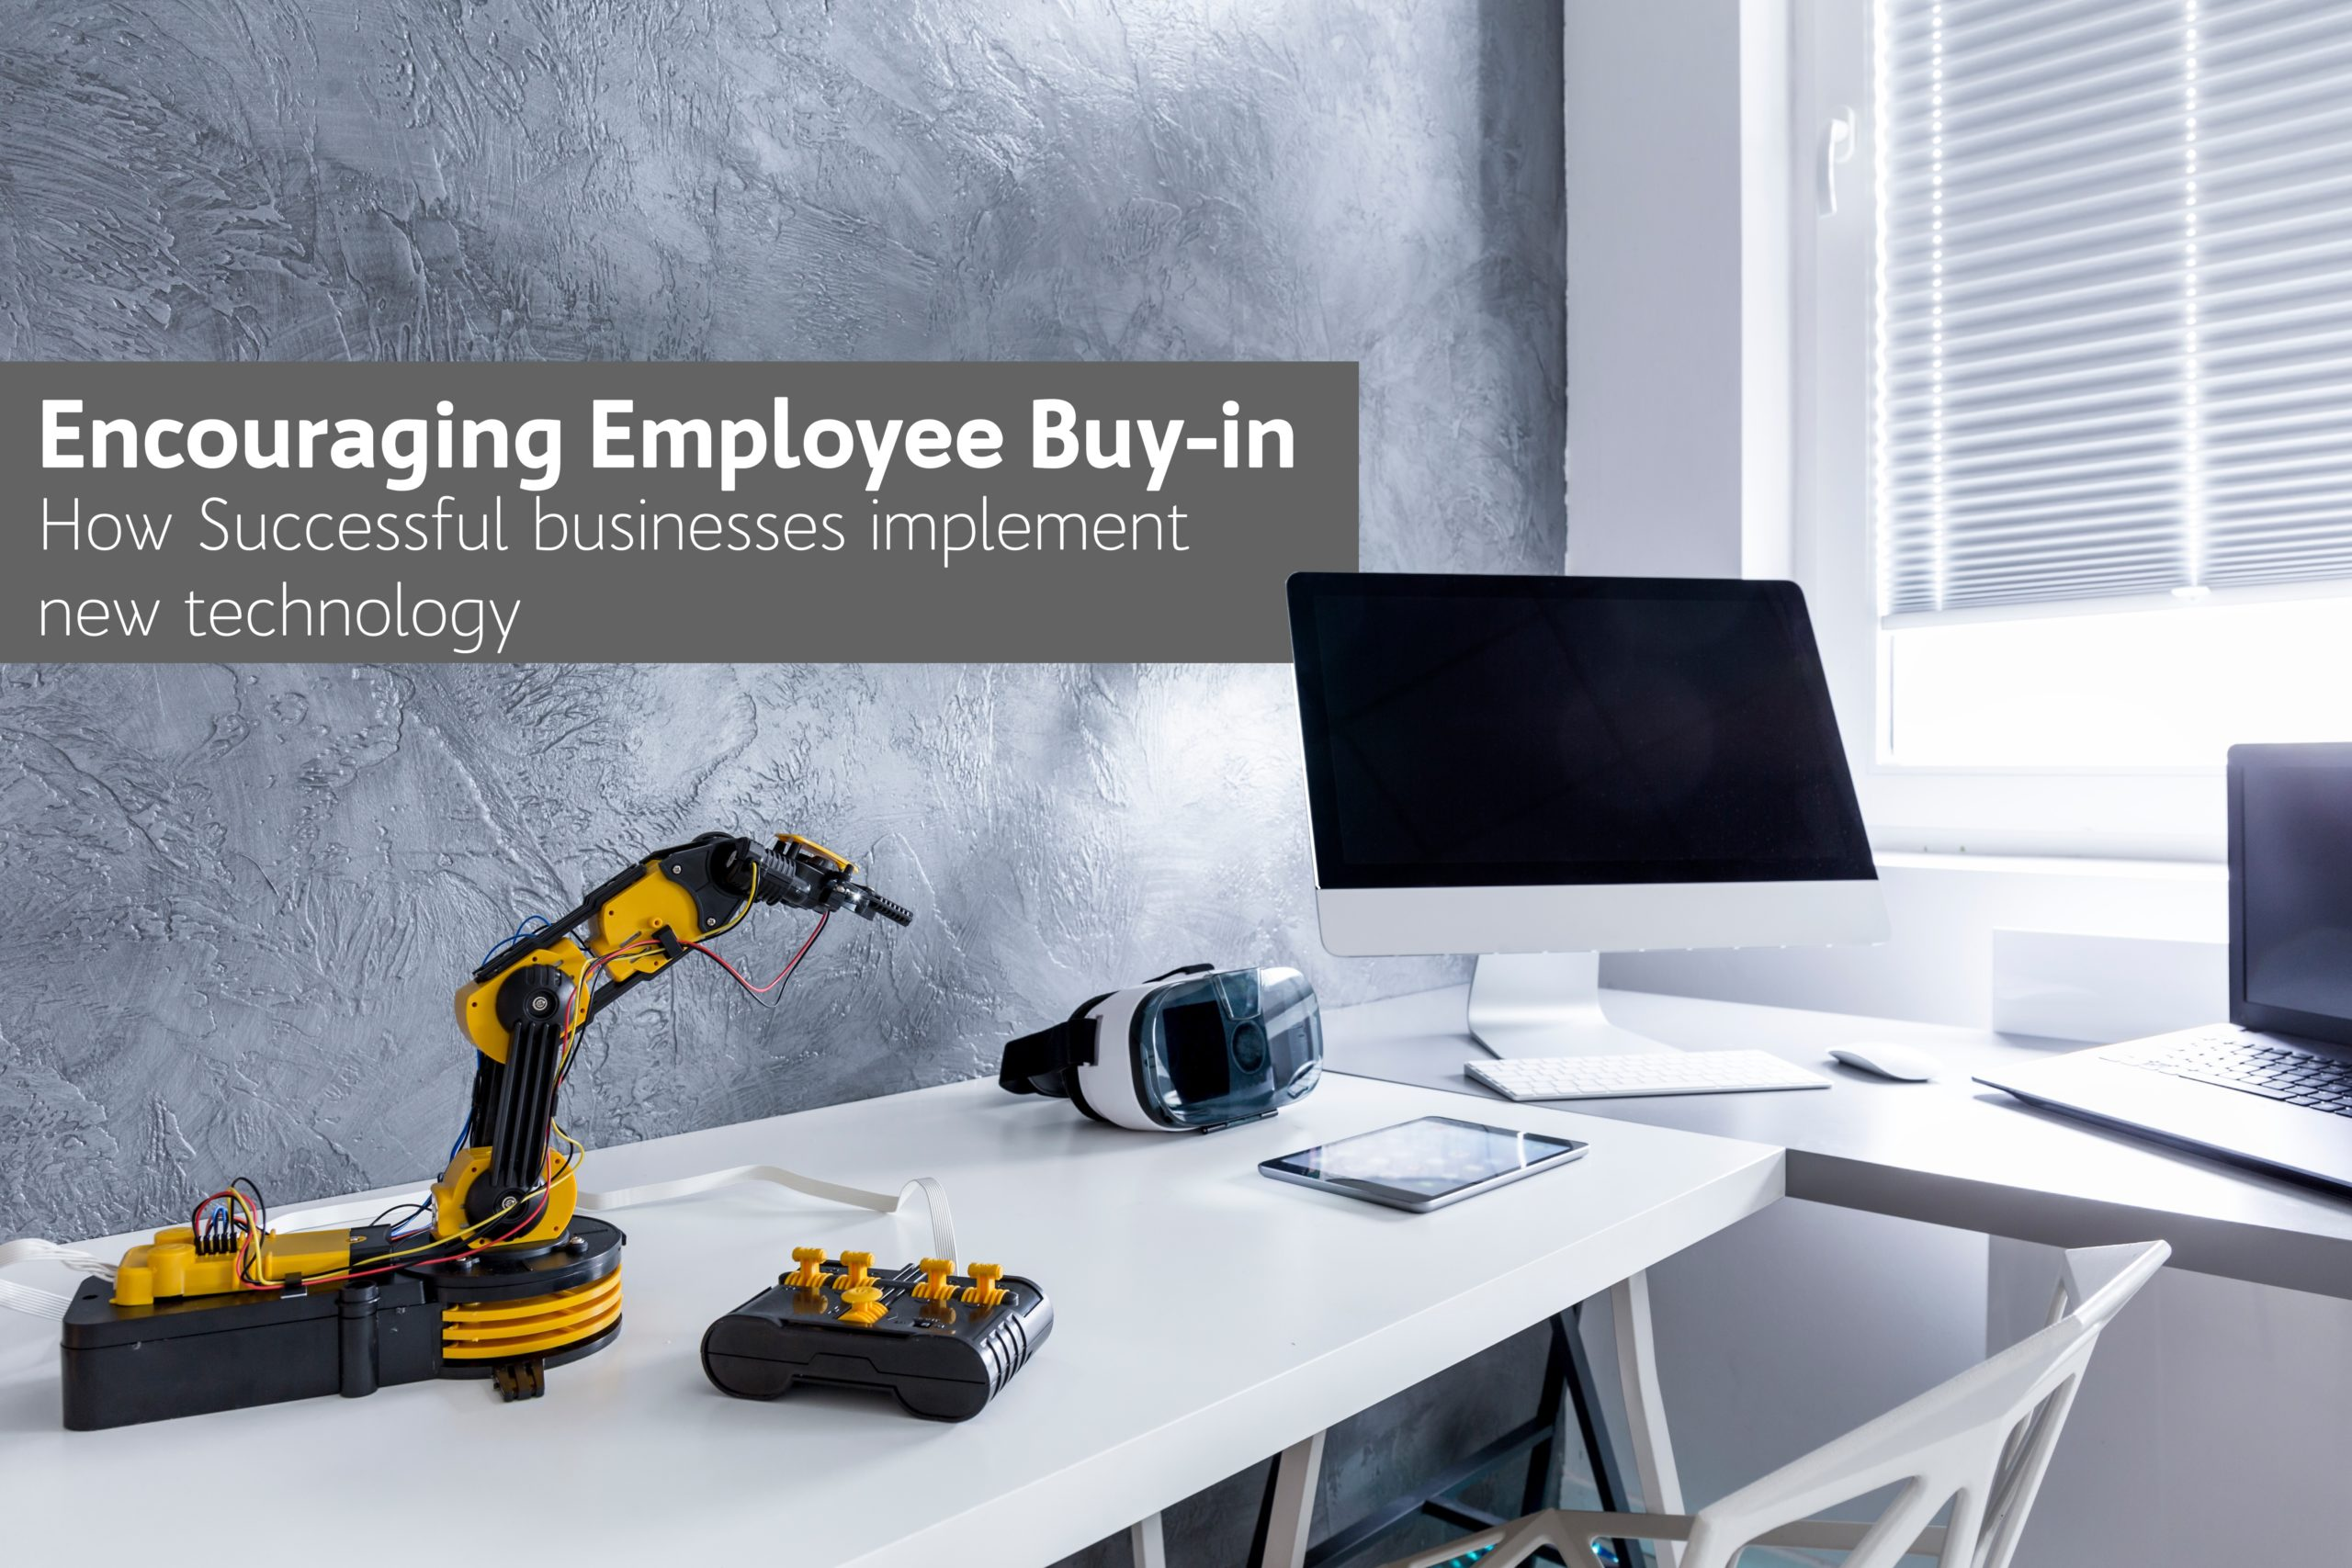 Encouraging Employee Buy-in: Implementing new Technology